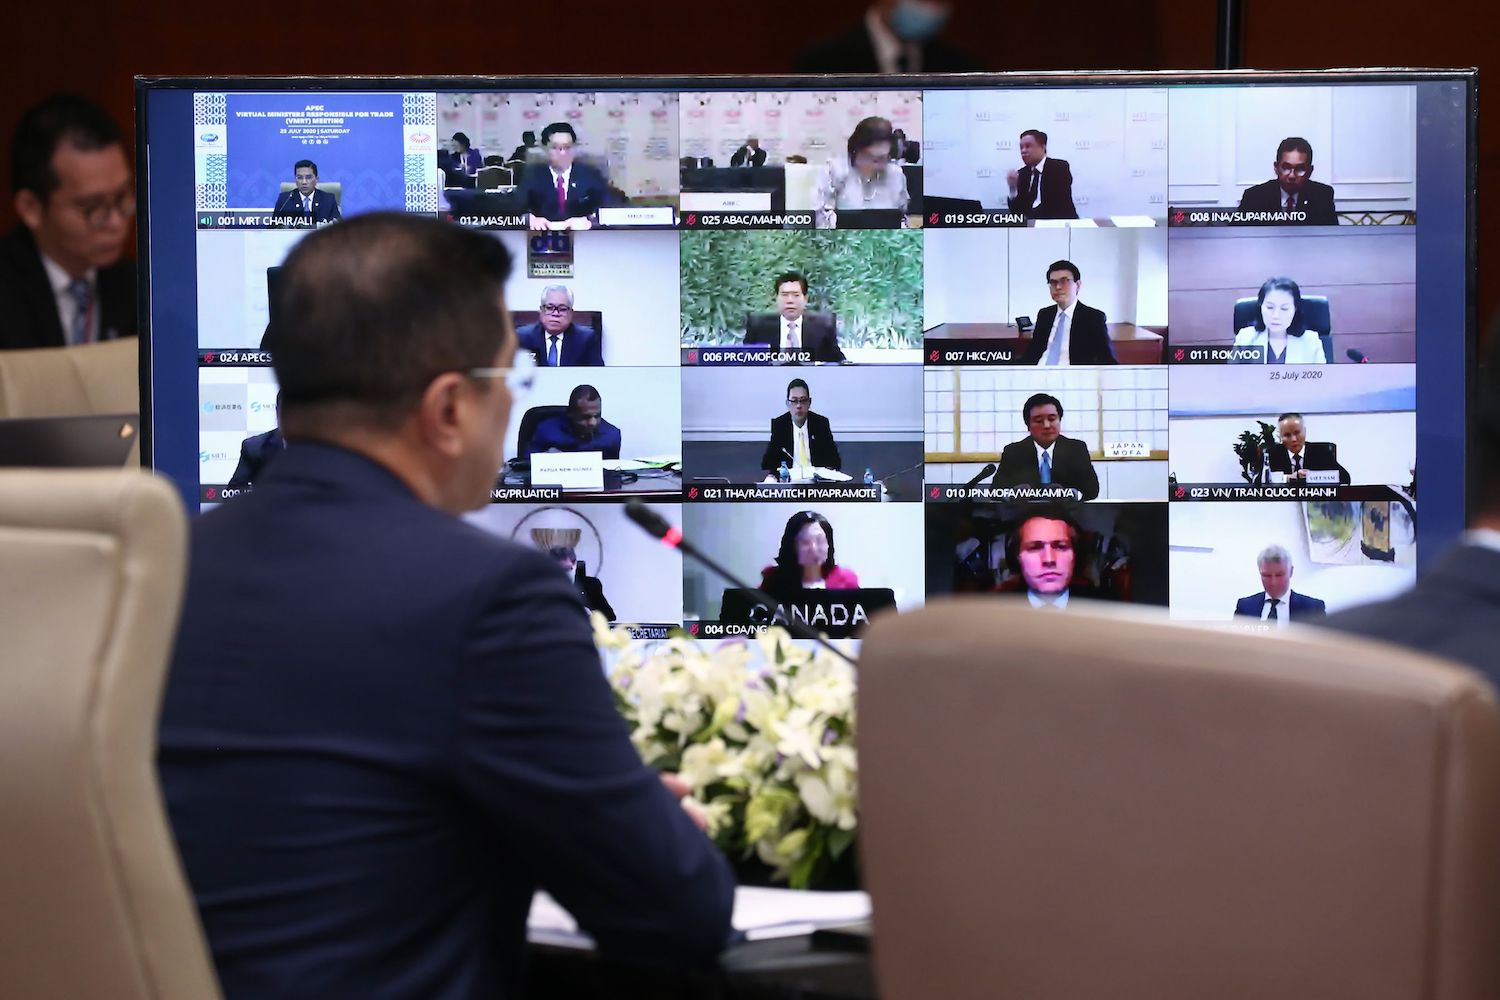 Mohamed Azmin Ali, Malaysia's minister of international trade and industry, interacts with his peers during an Apec trade ministers' meeting in July. The leaders' meeting will also be virtual, sources say. (Handout photo via AFP)